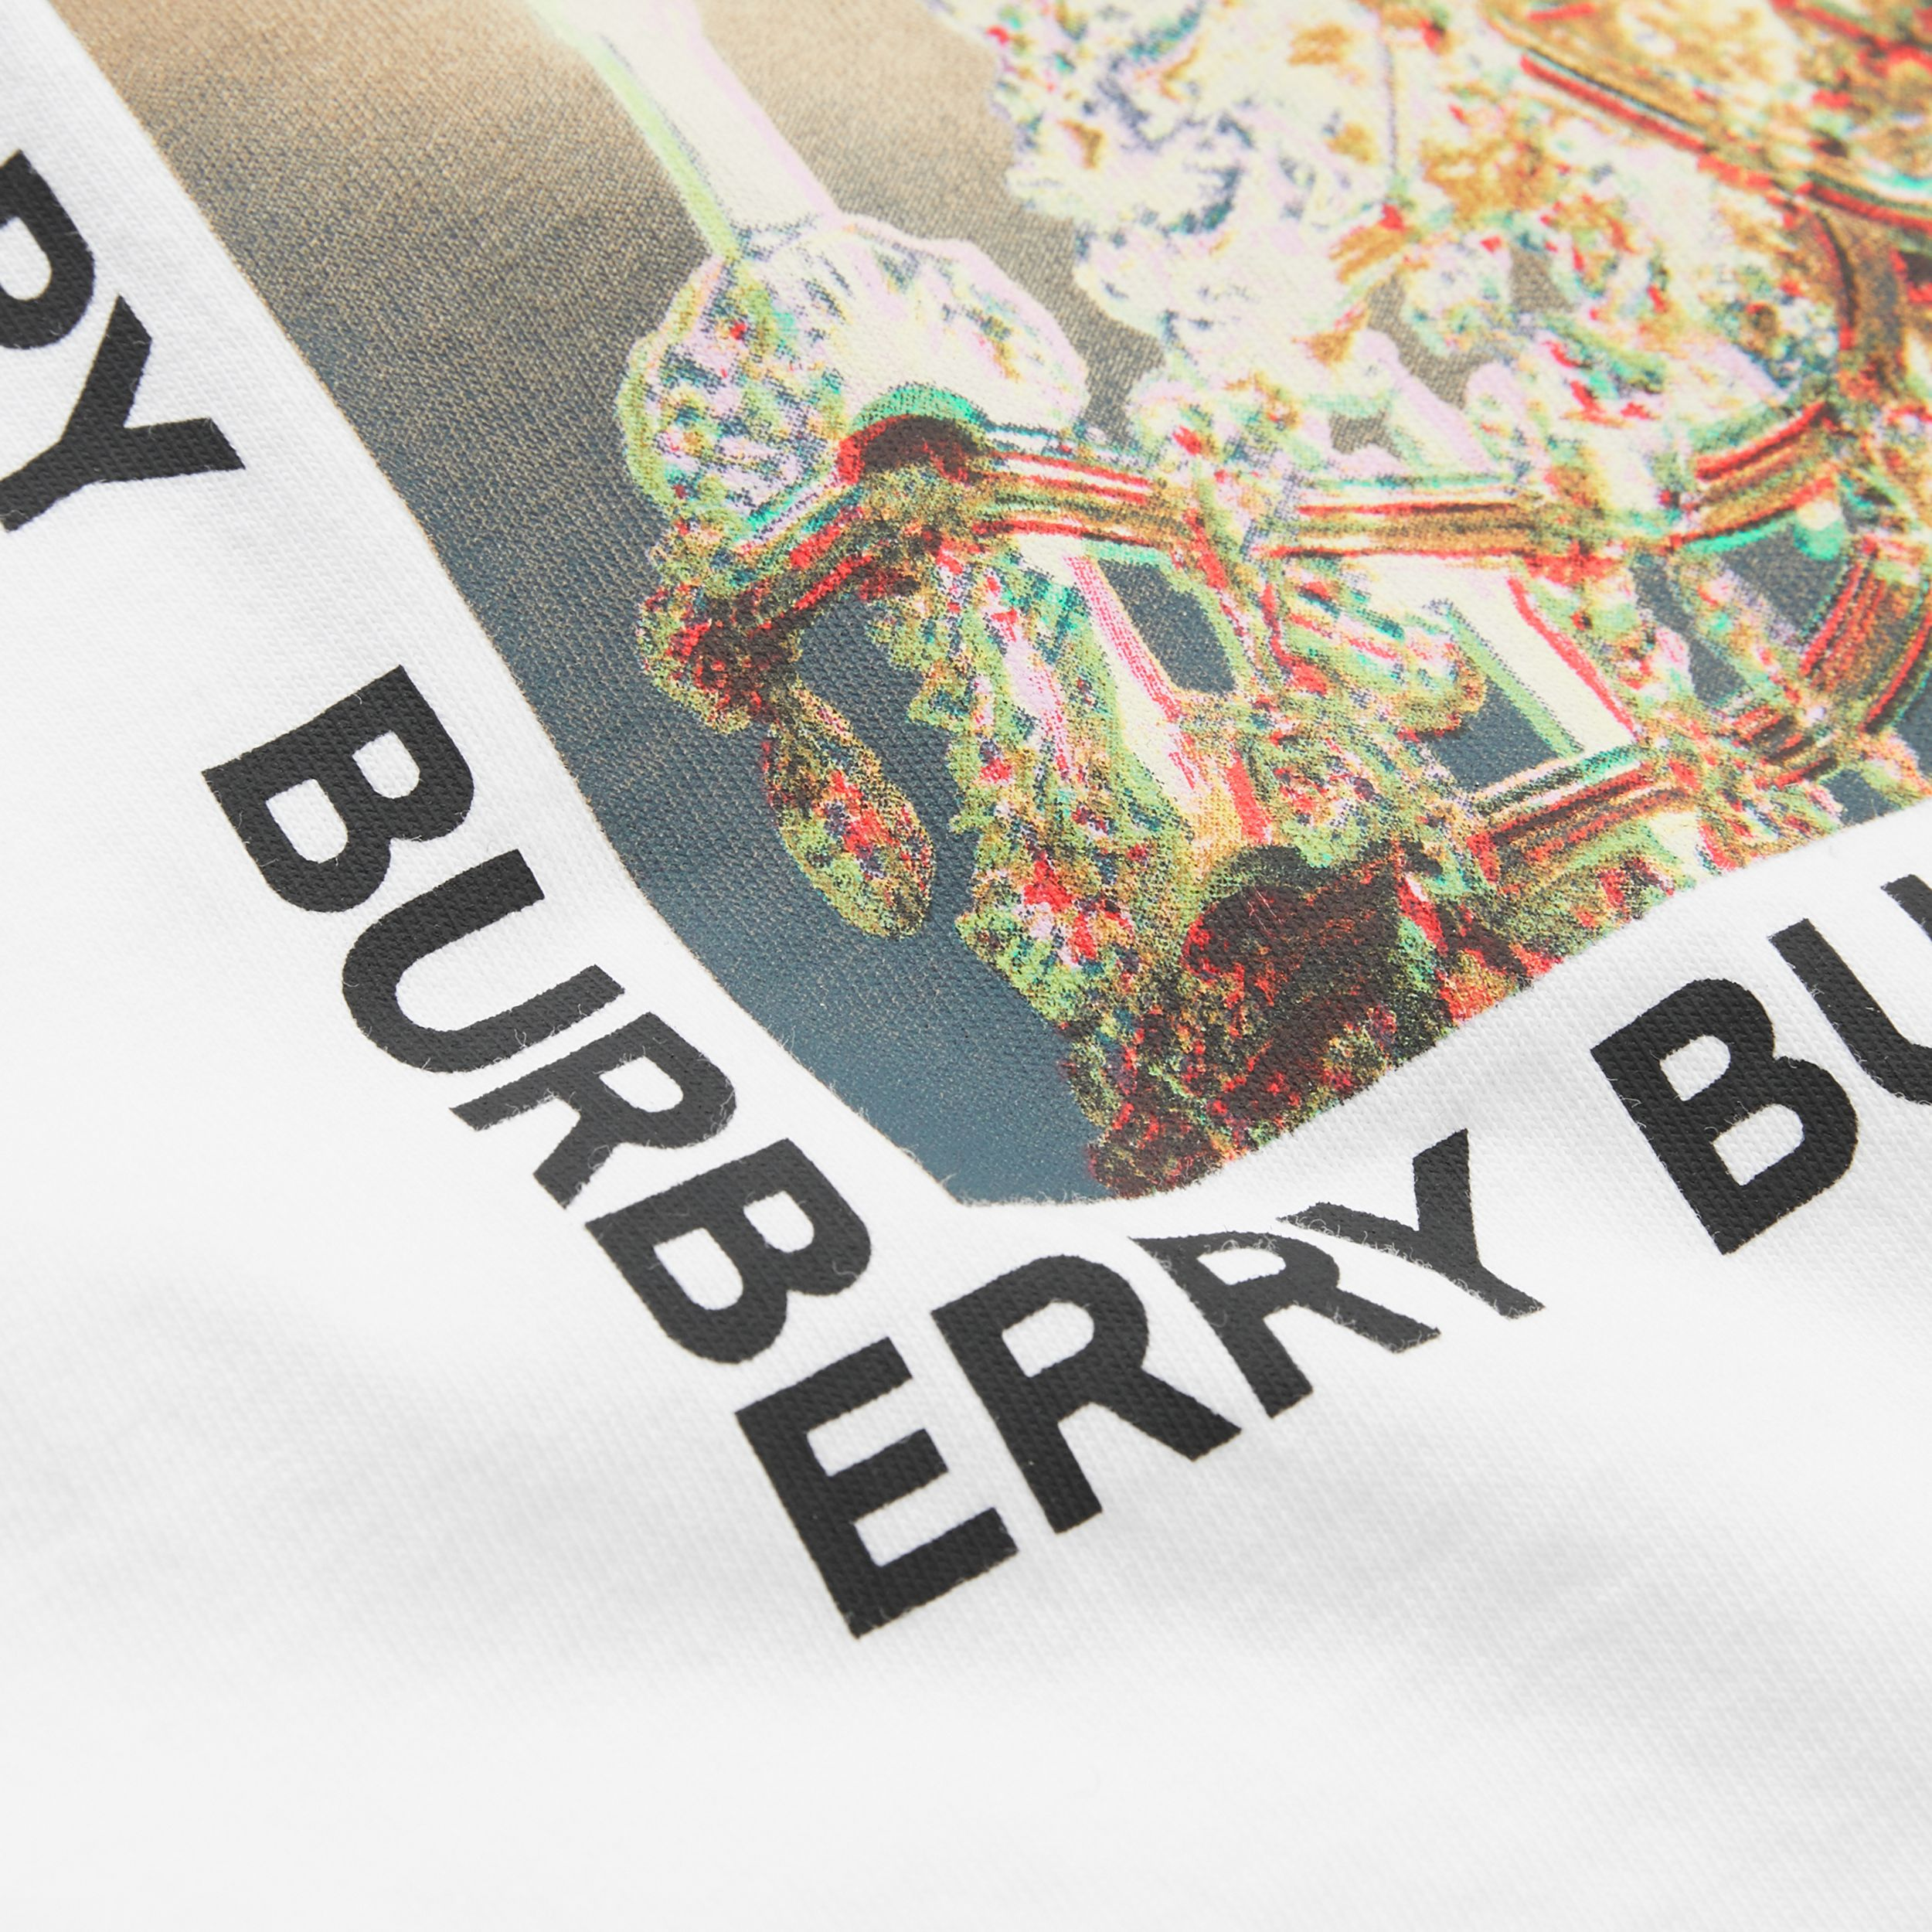 Chandelier Print Cotton T-shirt in White | Burberry - 2